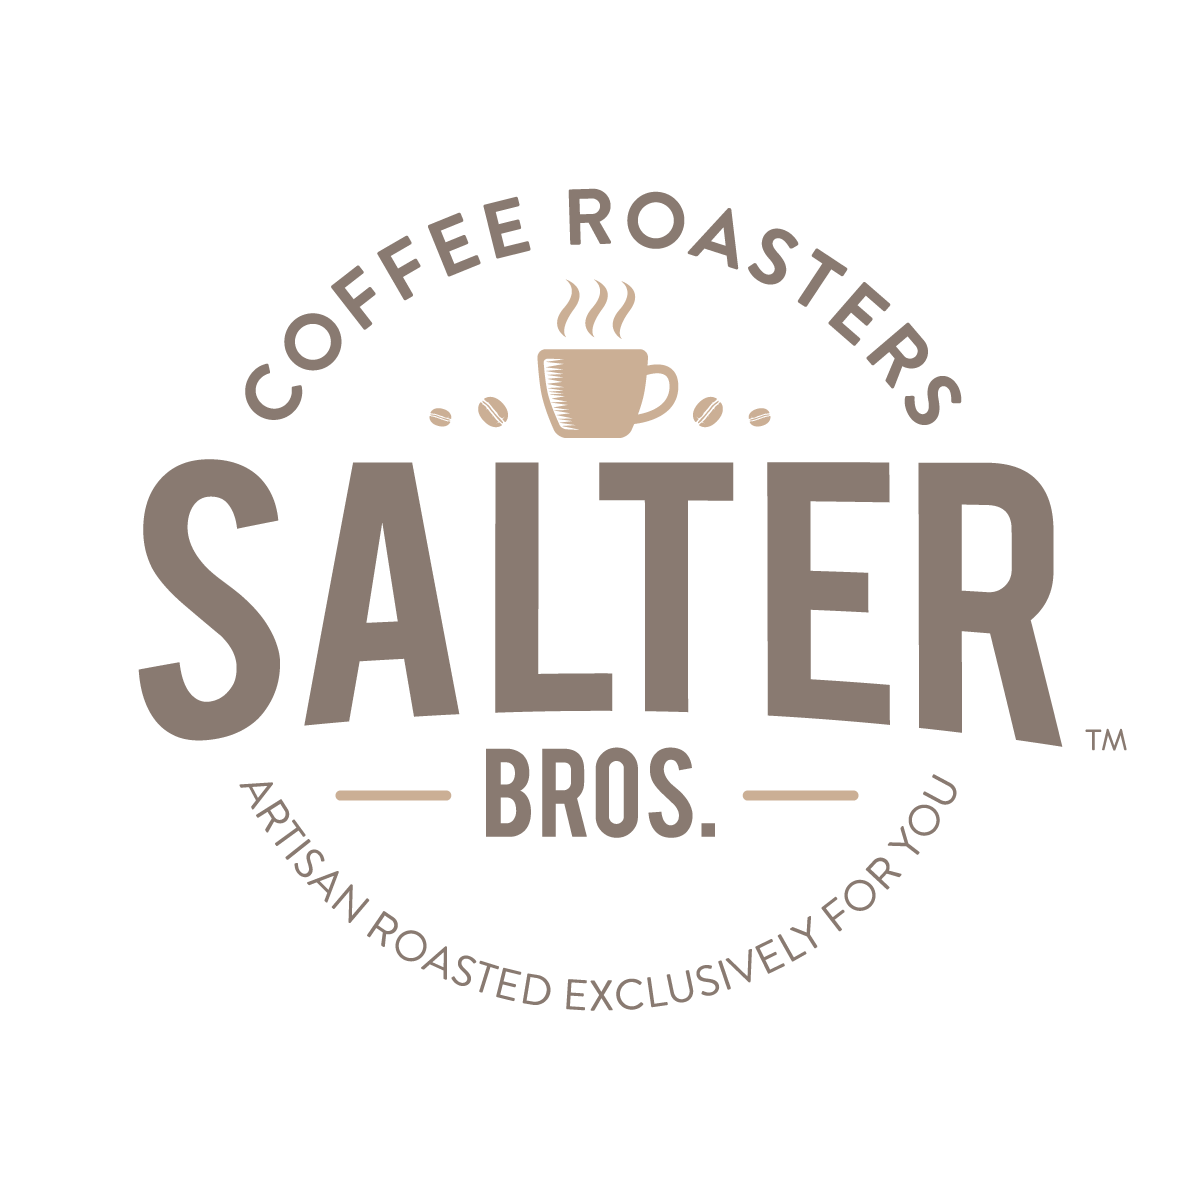 Salter Bros. Coffee